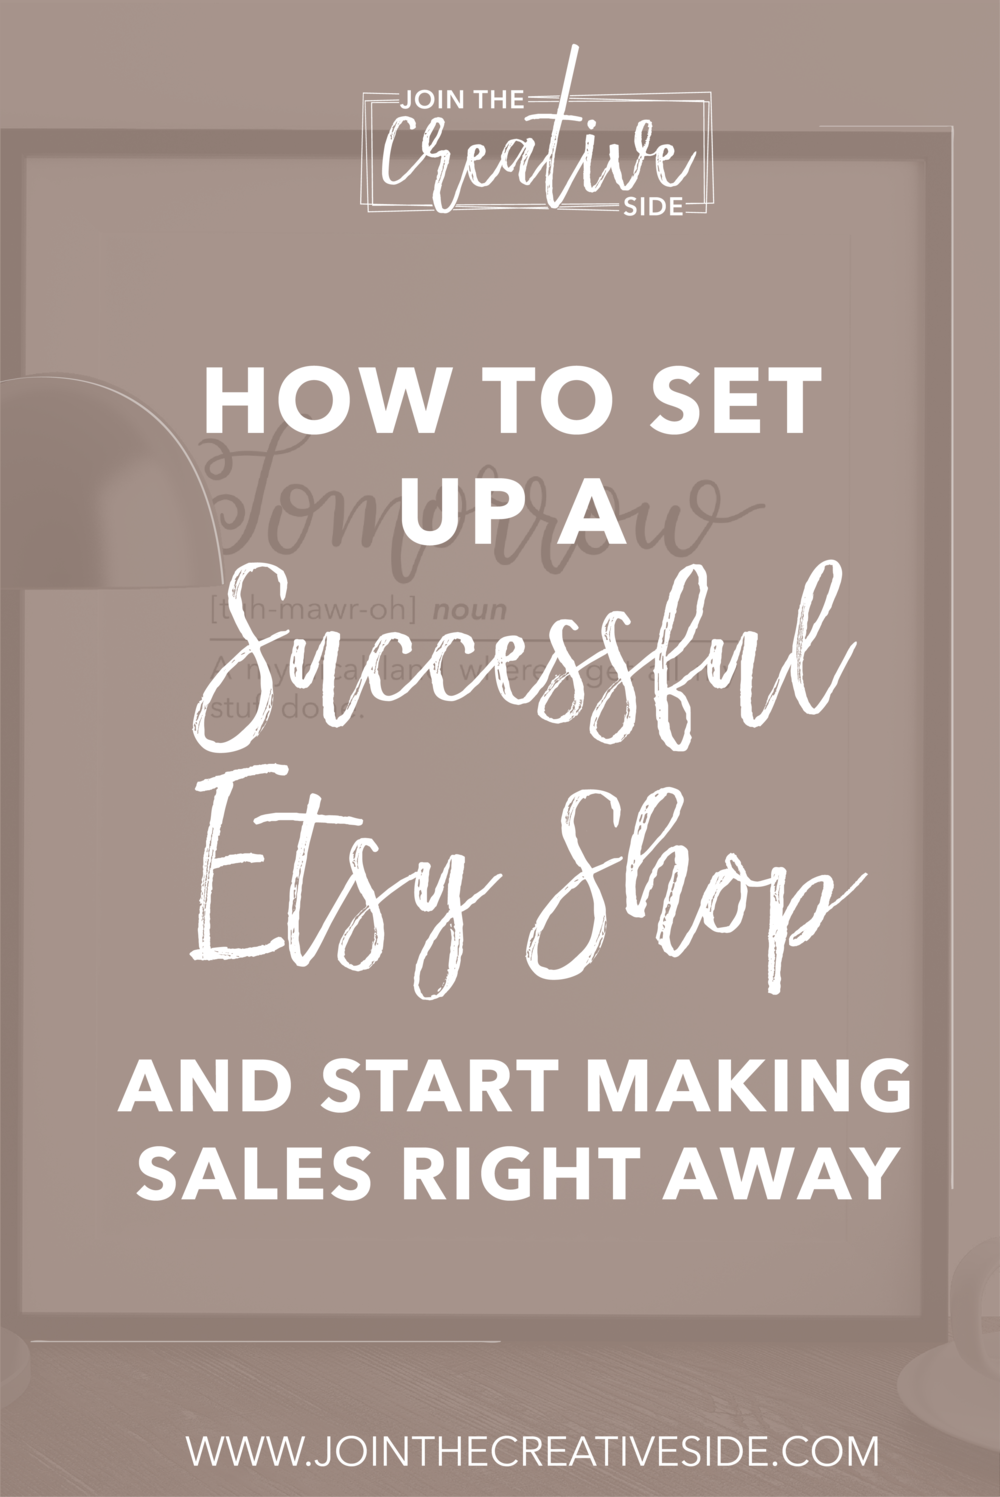 How to set up a successful Etsy shop and start making sales right away.